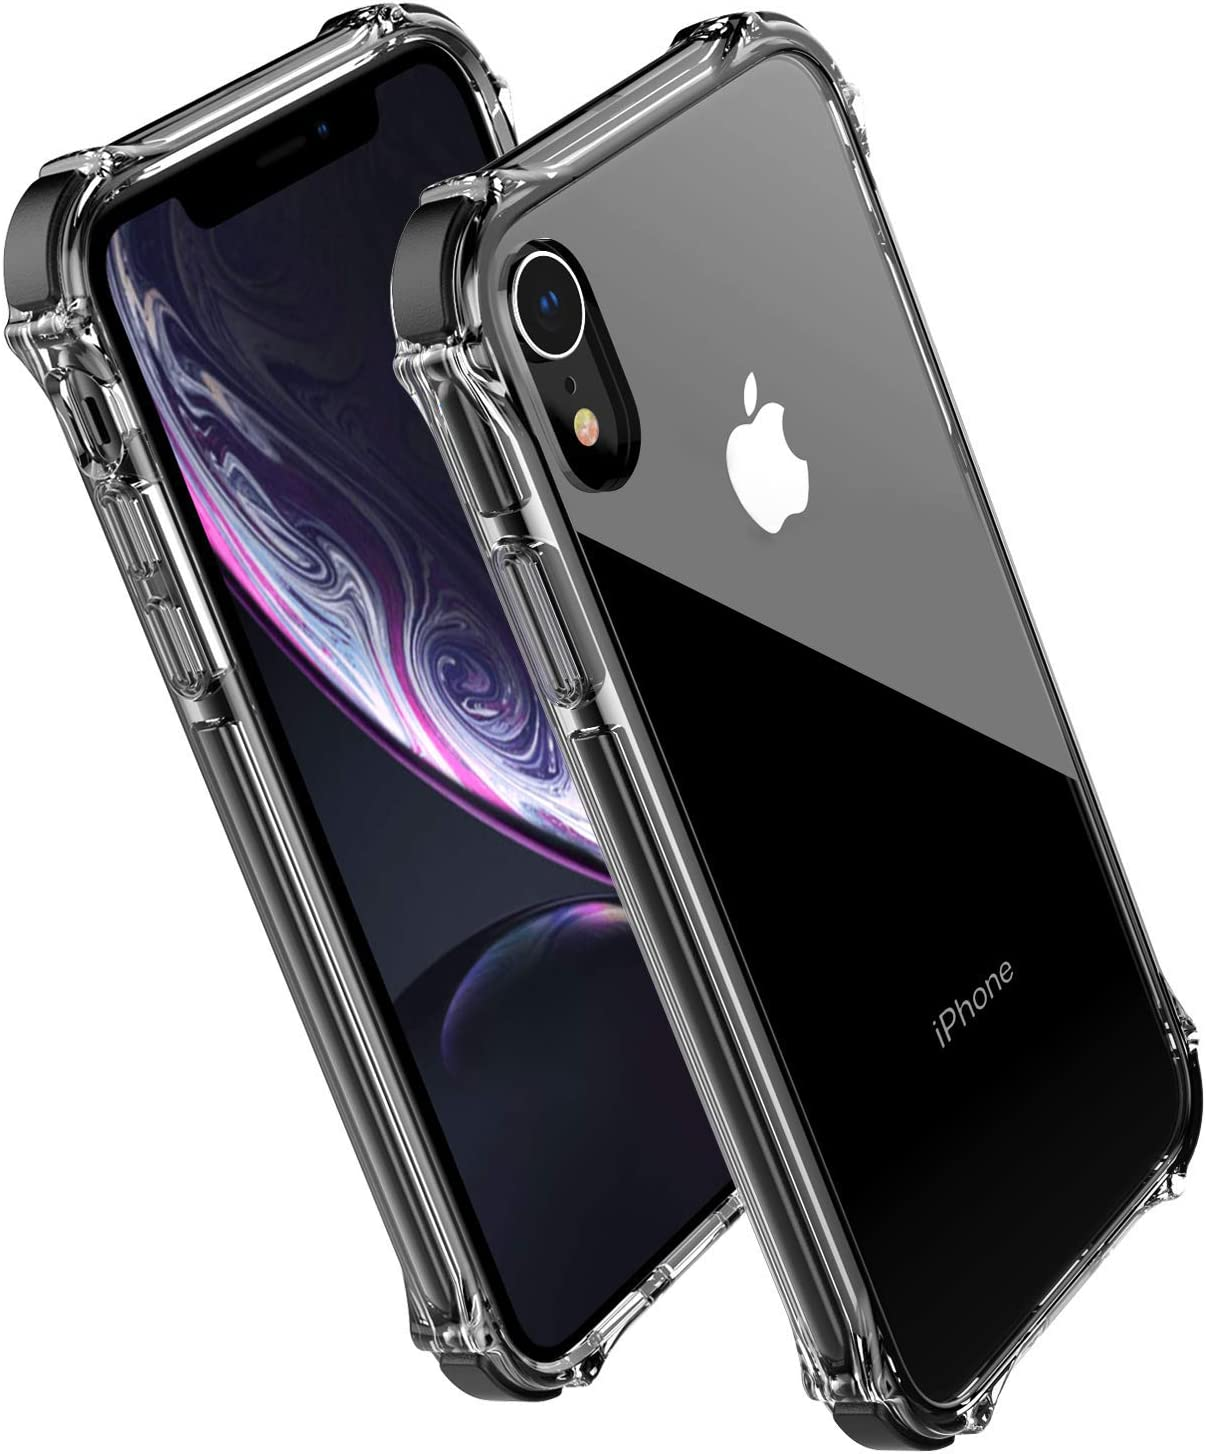 Compatible with Apple iPhone XR case,Noii Clear Hybrid Drop Protection case,[Super Rubber Bumper Series] Shockproof case,Heavy Duty Drop Protective Cover for iPhone XR 6.1 inch 2018 - Black